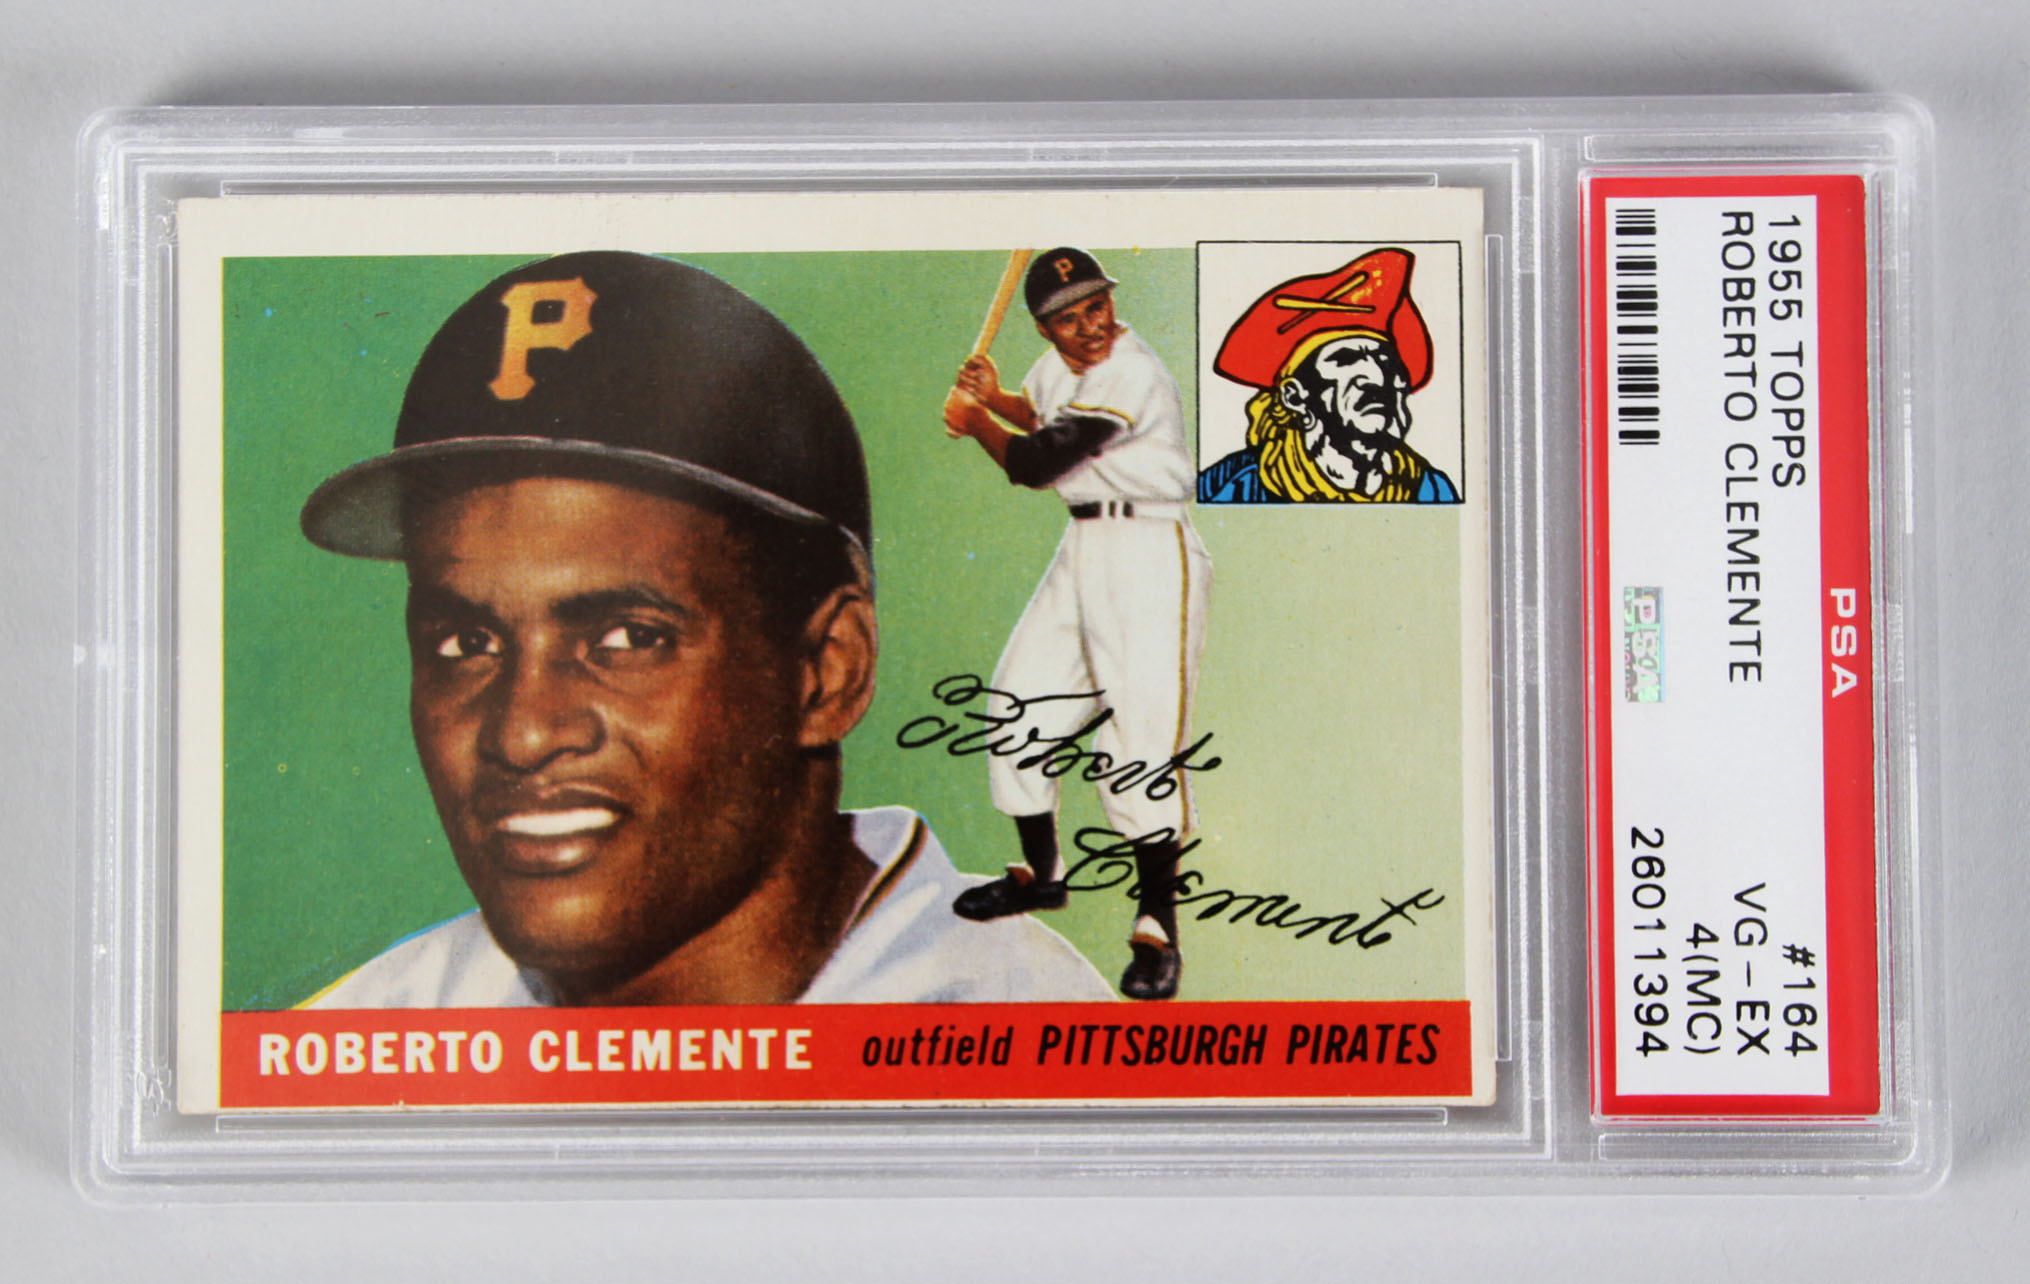 1955 Topps Pittsburgh Pirates Roberto Clemente Baseball Rc Card Psa Graded Vg Ex 4 Mc